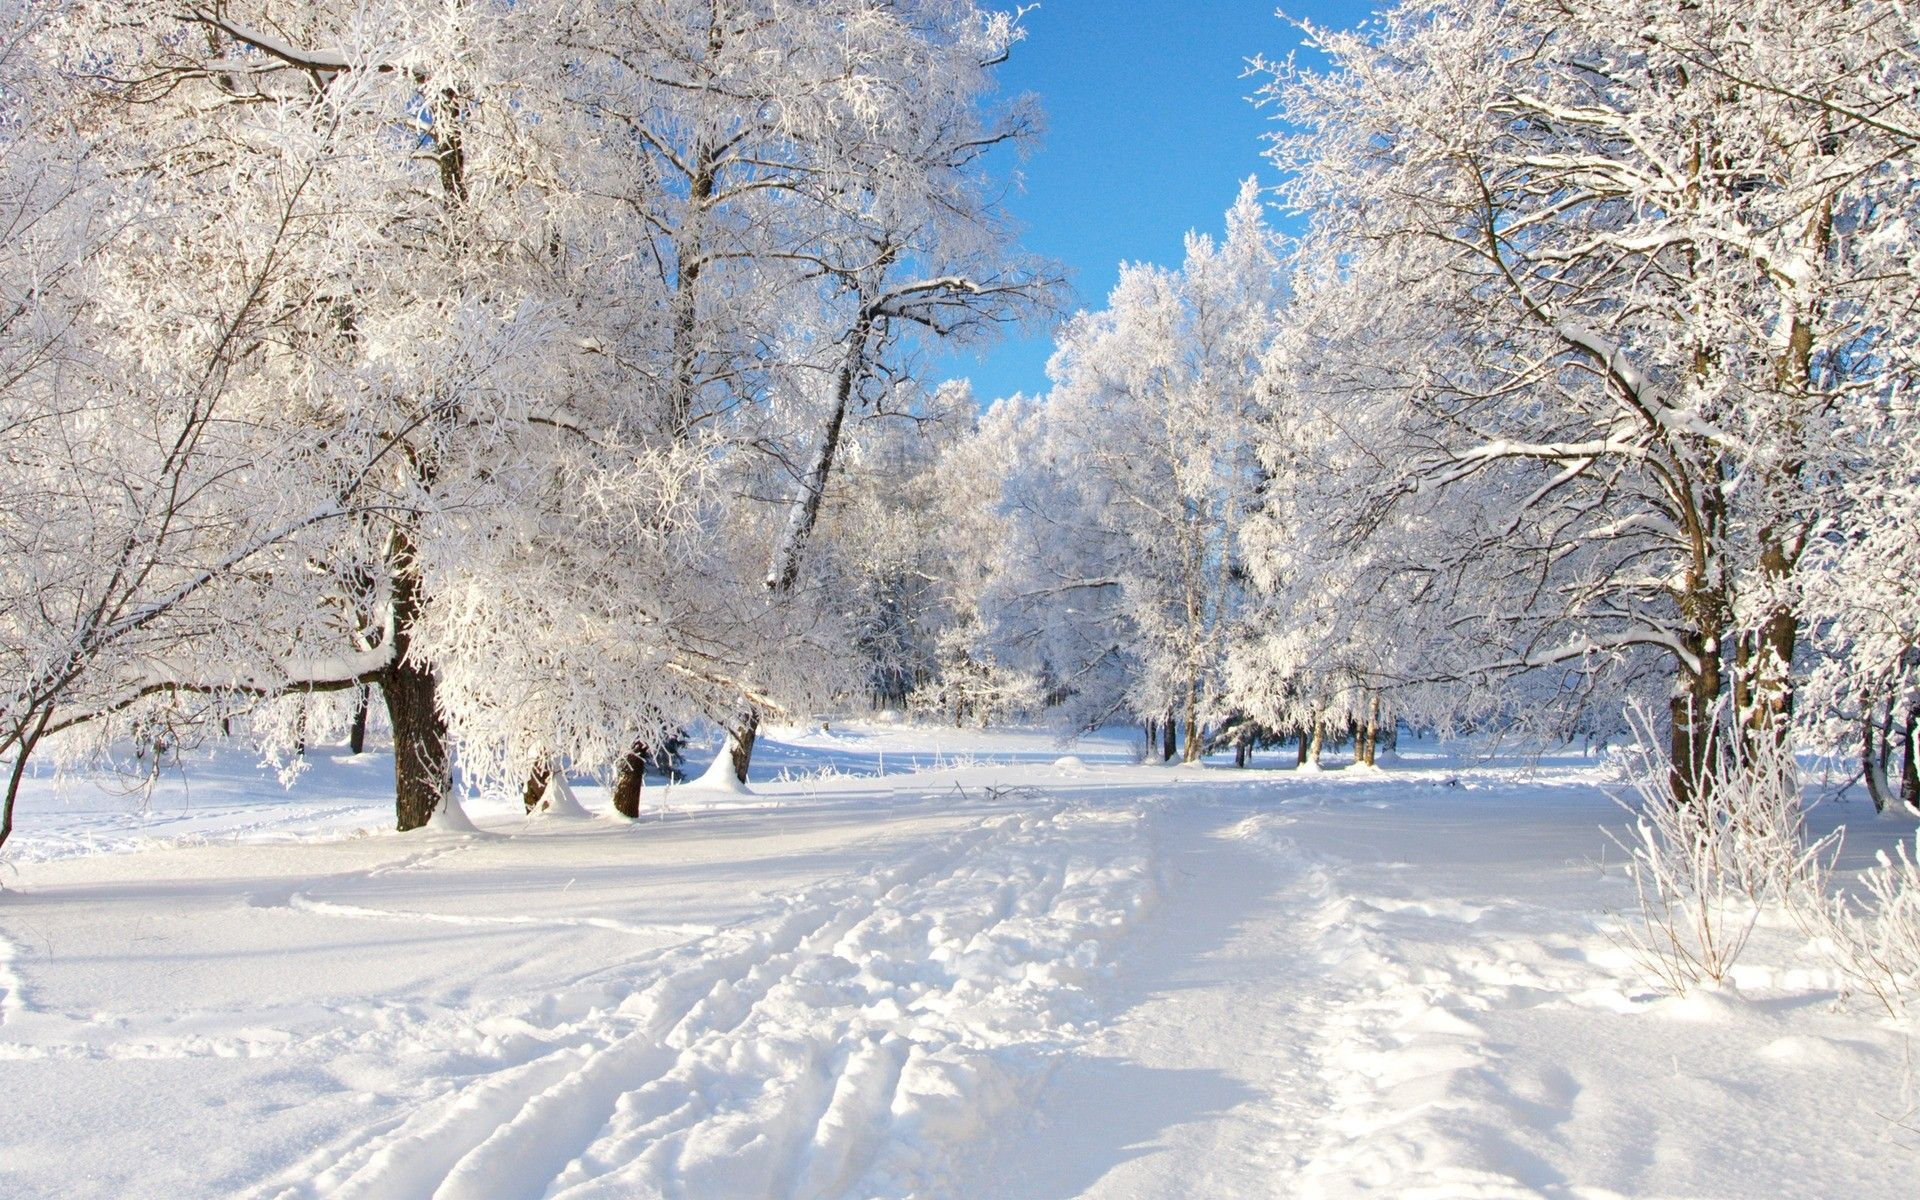 Winter Nature Wallpaper Images For Desktop Wallpaper 1920